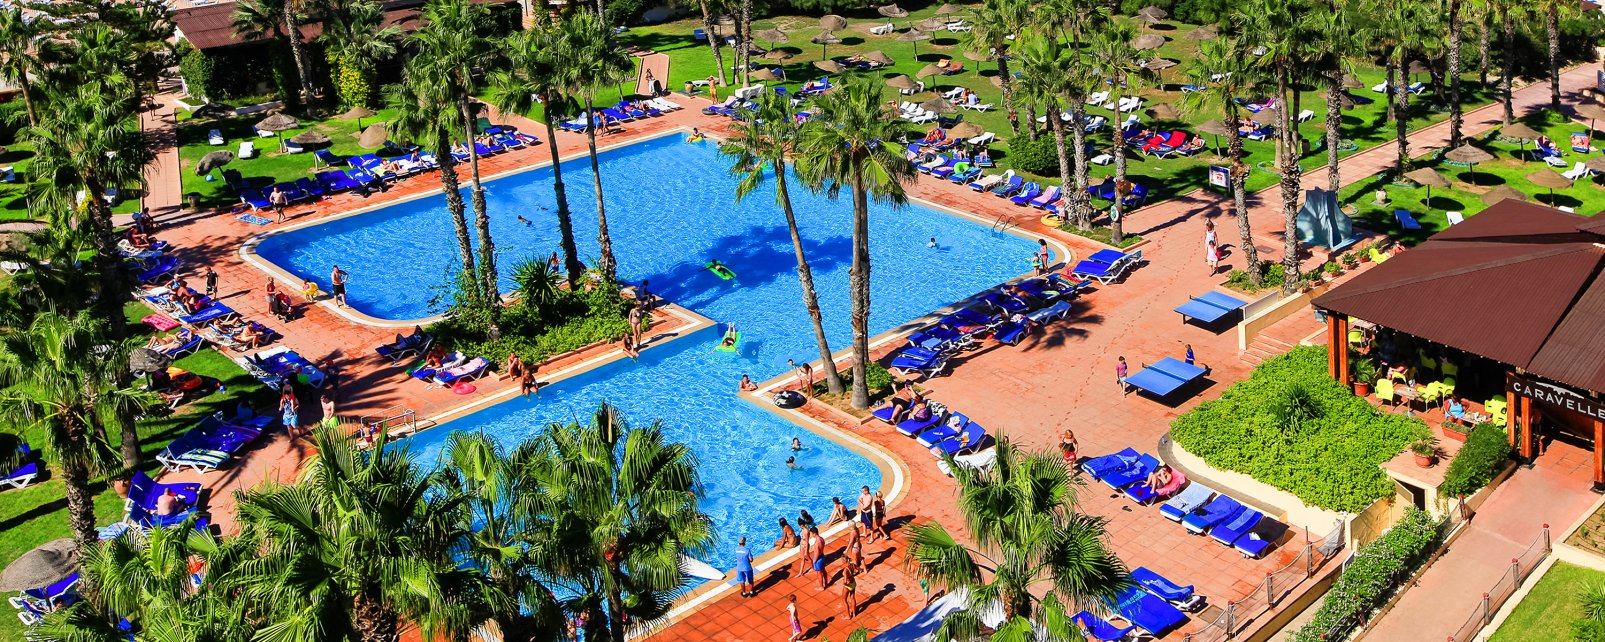 Hotel Sahara Beach Aquapark Resort